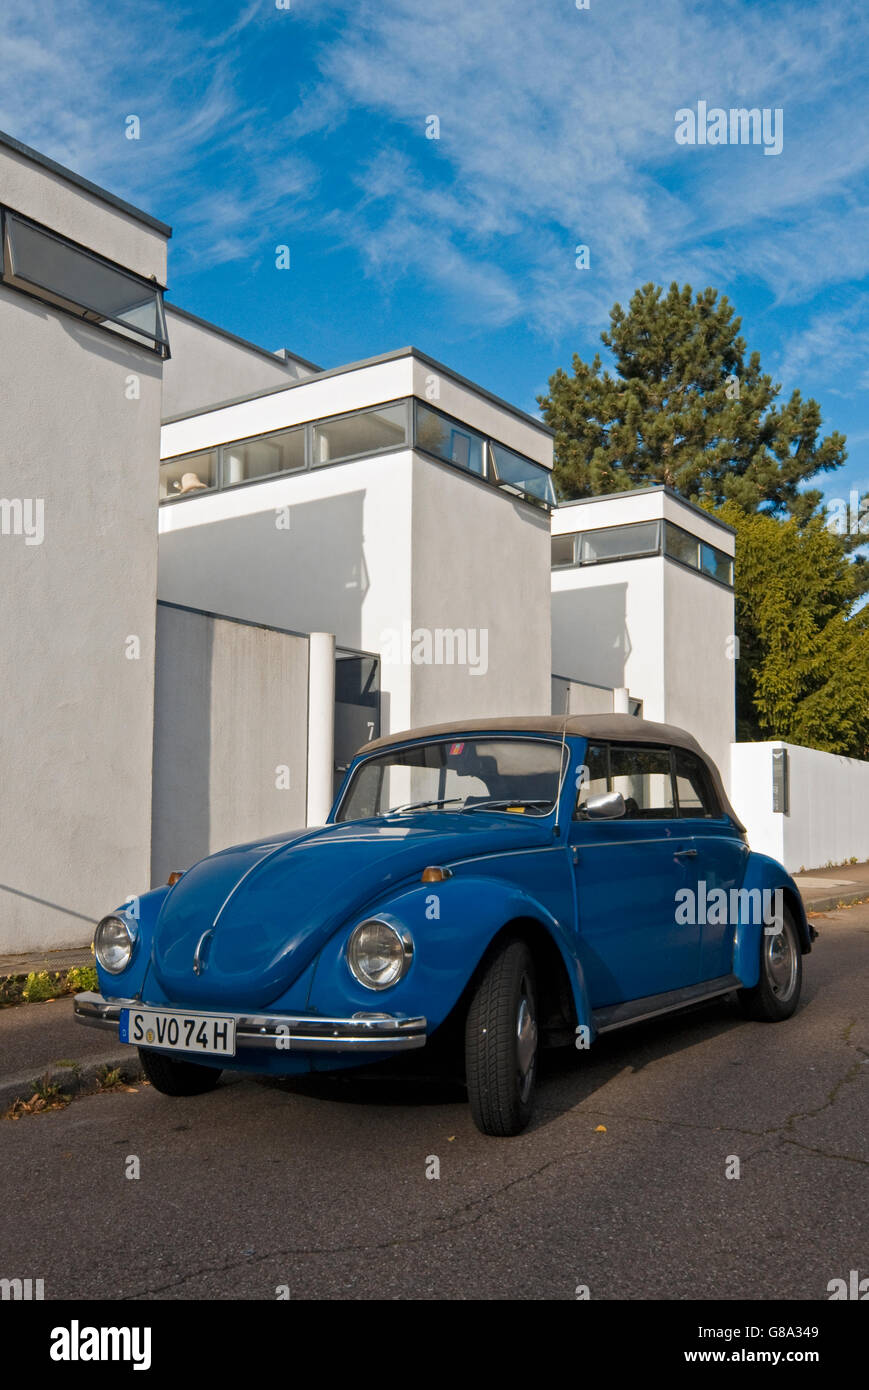 Blue VW Super Beetle 1302 in front of terraced houses by Jacobus Johannes Pieter Oud, at Weissenhofsiedlung, Weissenhof - Stock Image